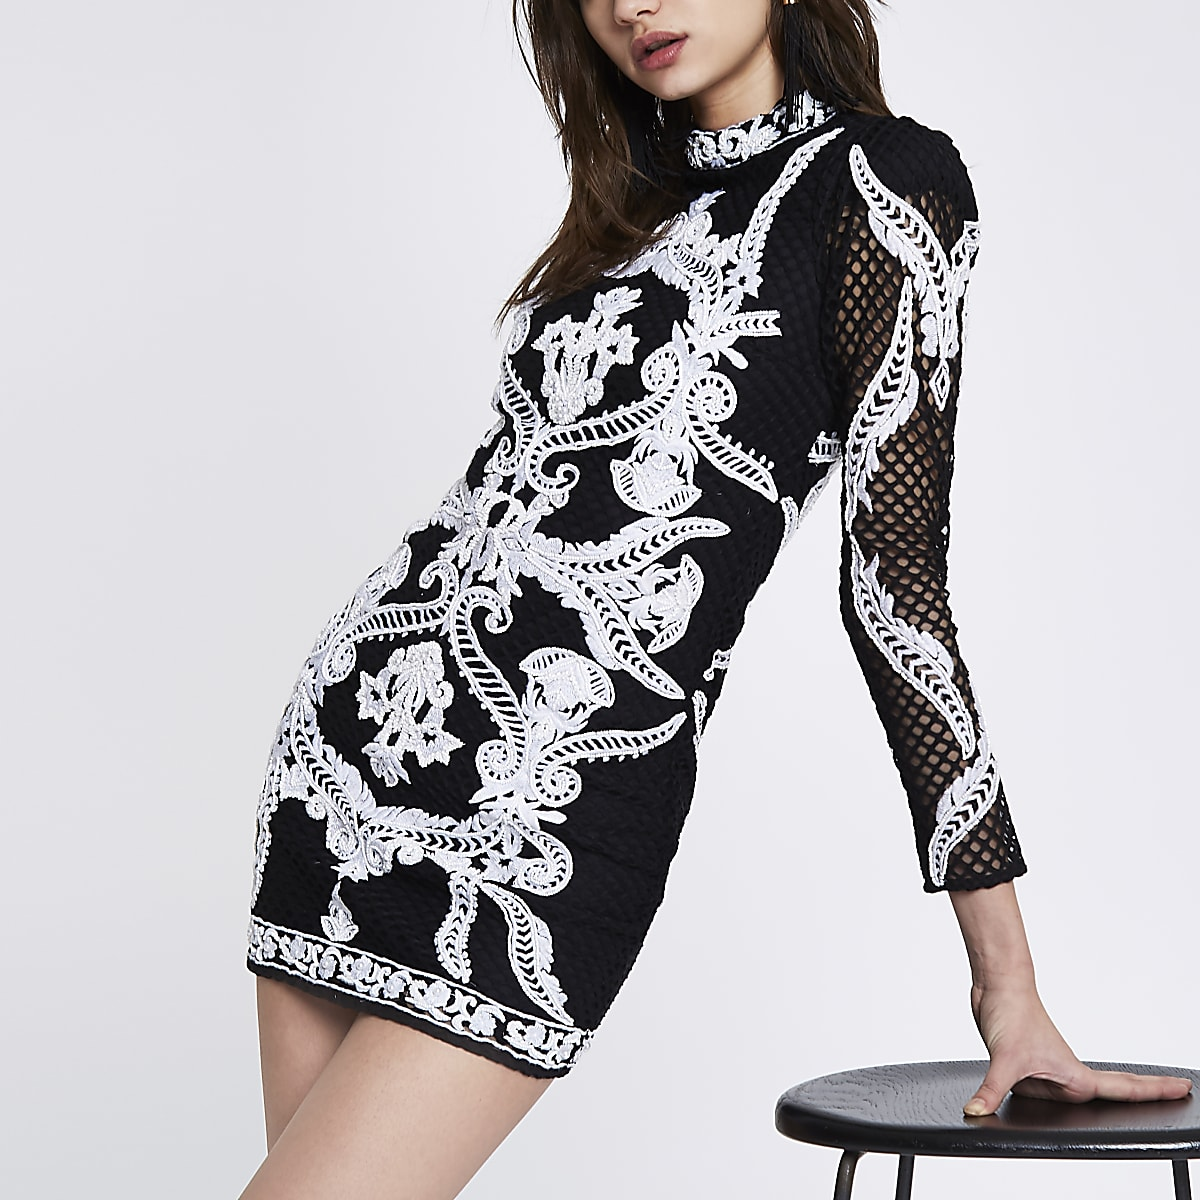 Black mesh embellished mini bodycon dress